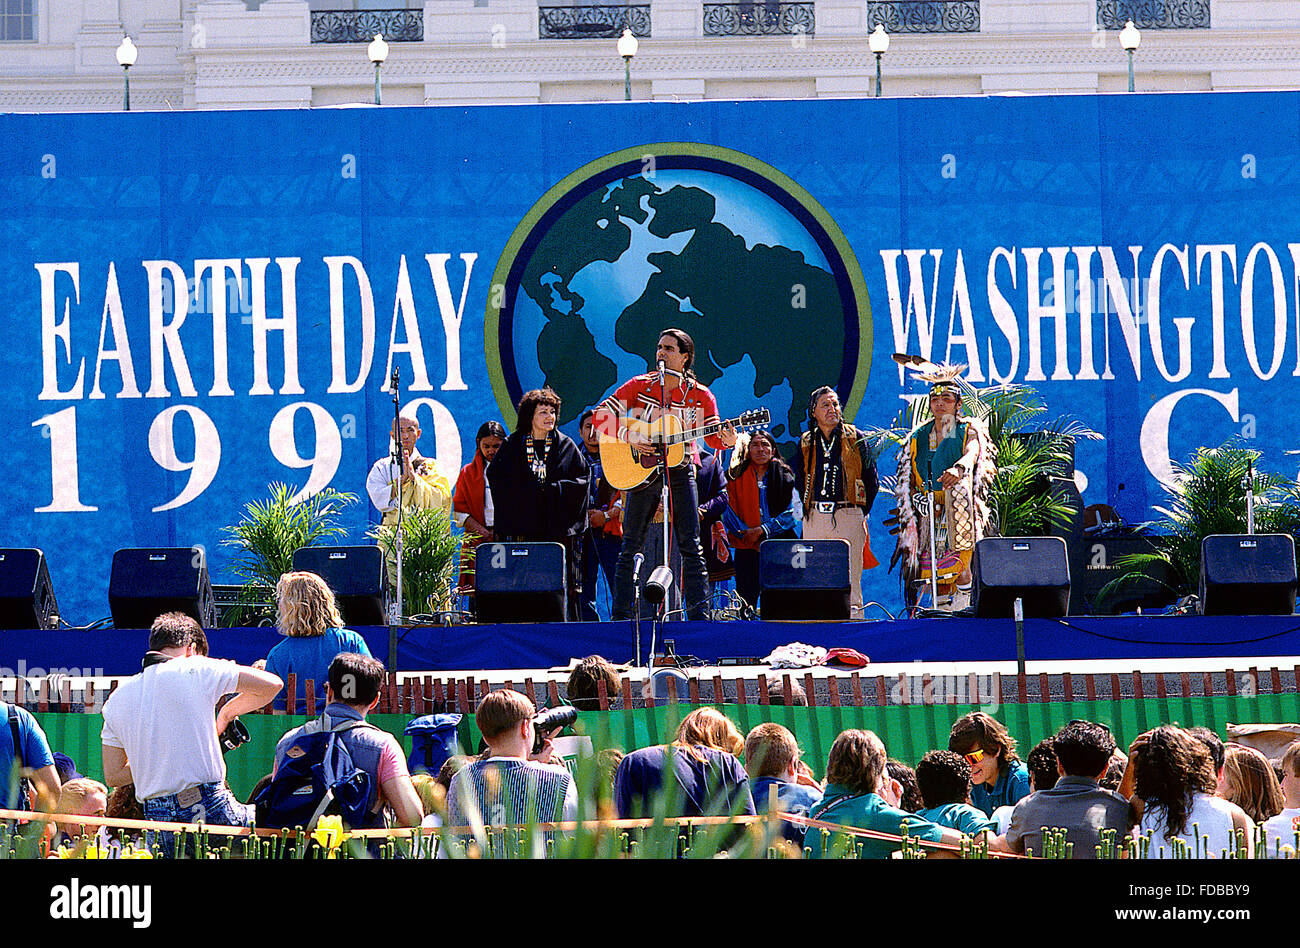 Washington, DC., USA, 22nd  April,1990 Earth Day on the west front of the US Capitol. Earth Day is an annual event, - Stock Image